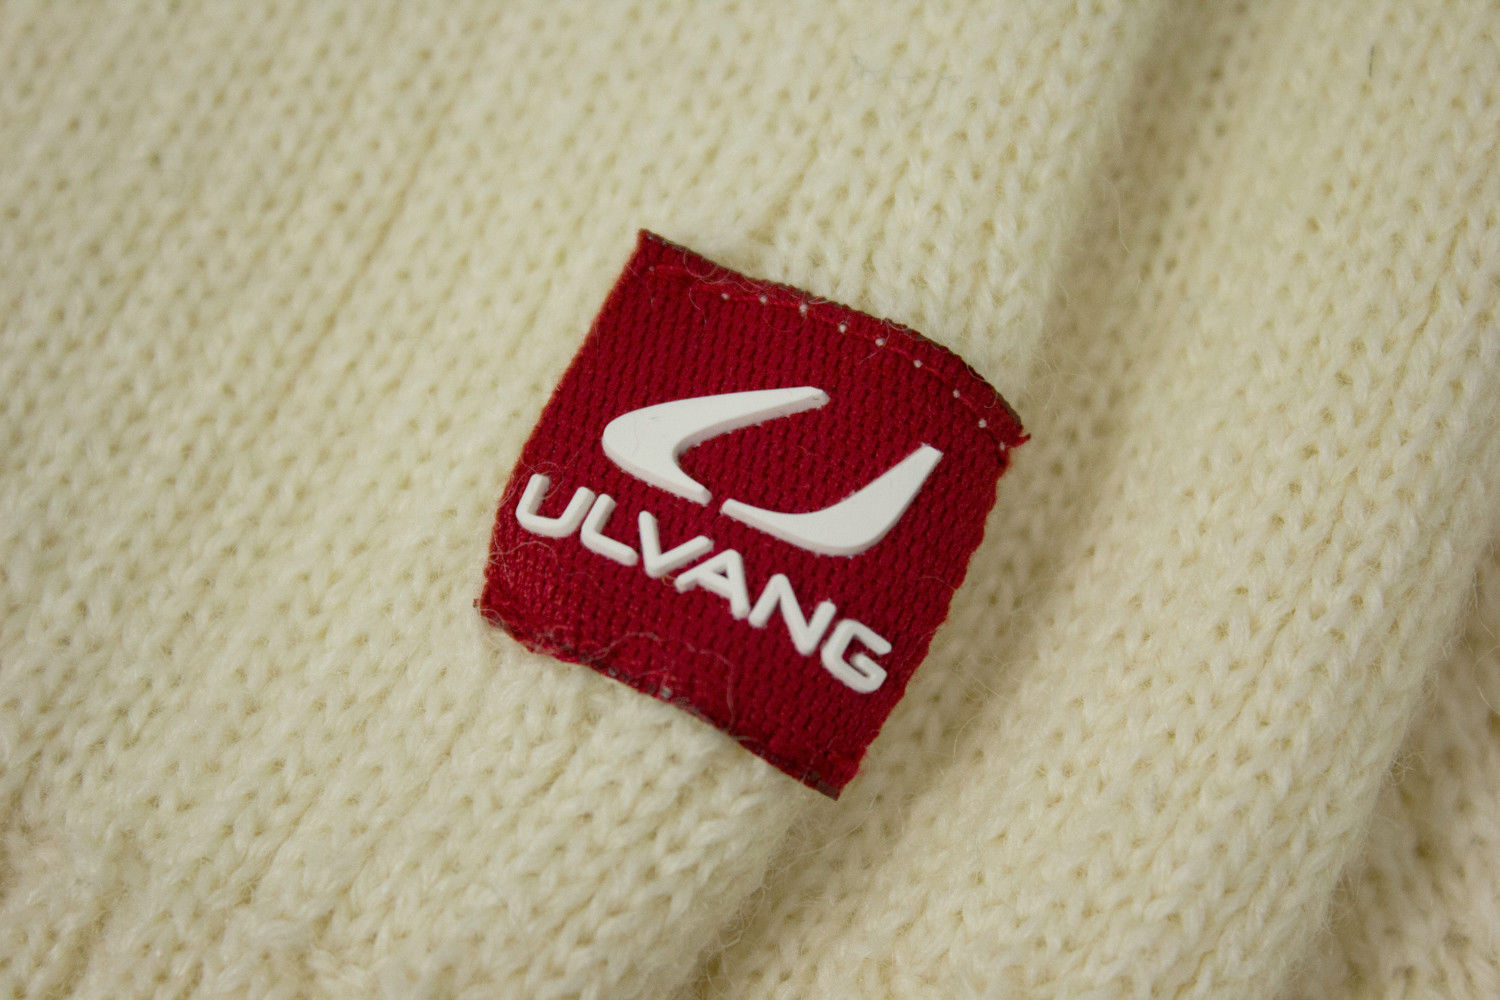 ULVANG Wool Zip Neck White Unisex Sweater Ski Jumper, M - secondfirst